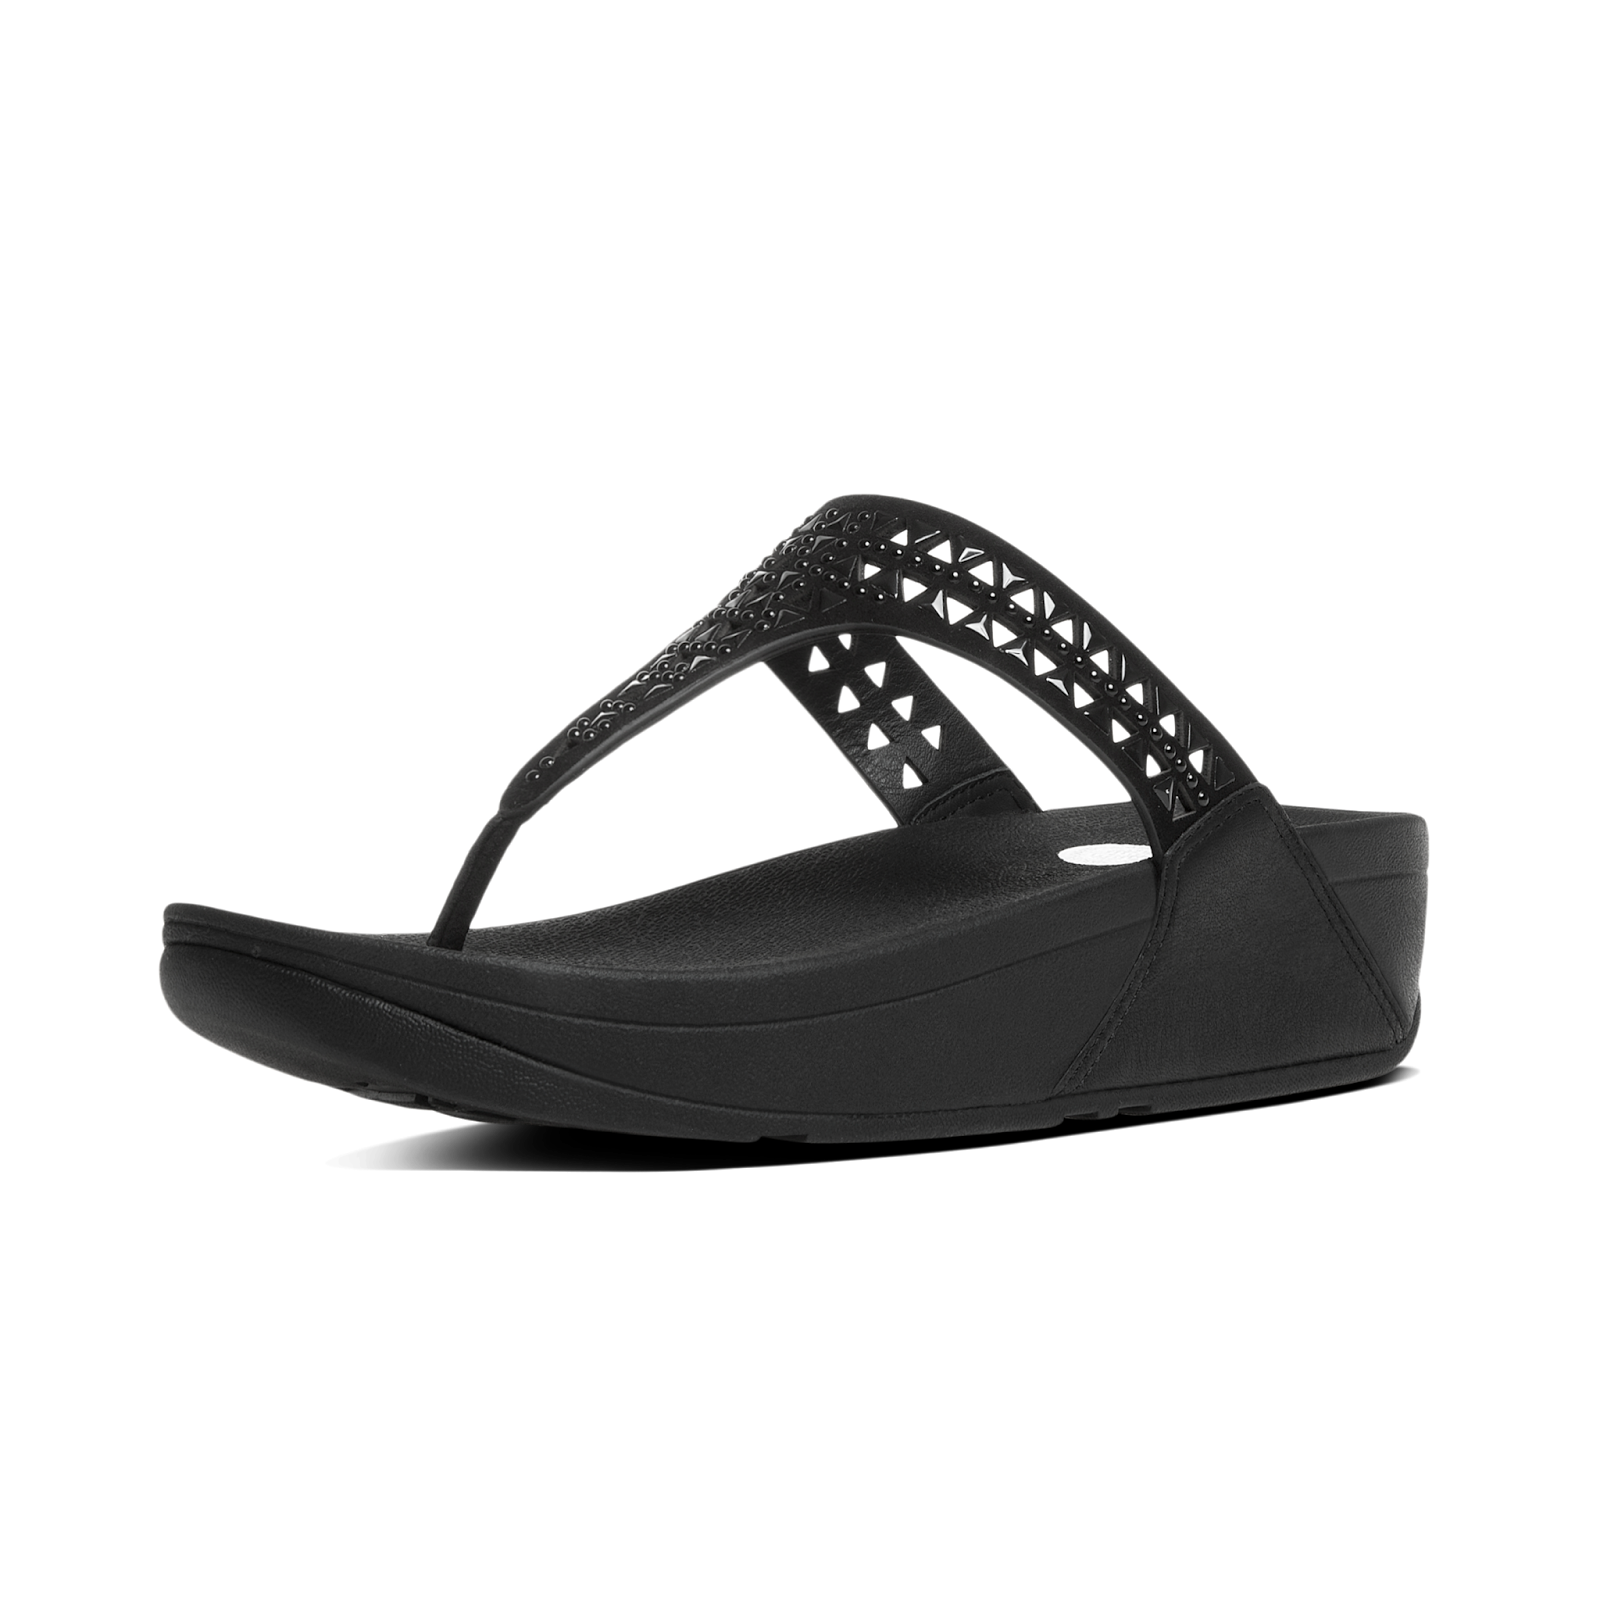 a58aaff2927 FitFlop Launches New Cruise Collection